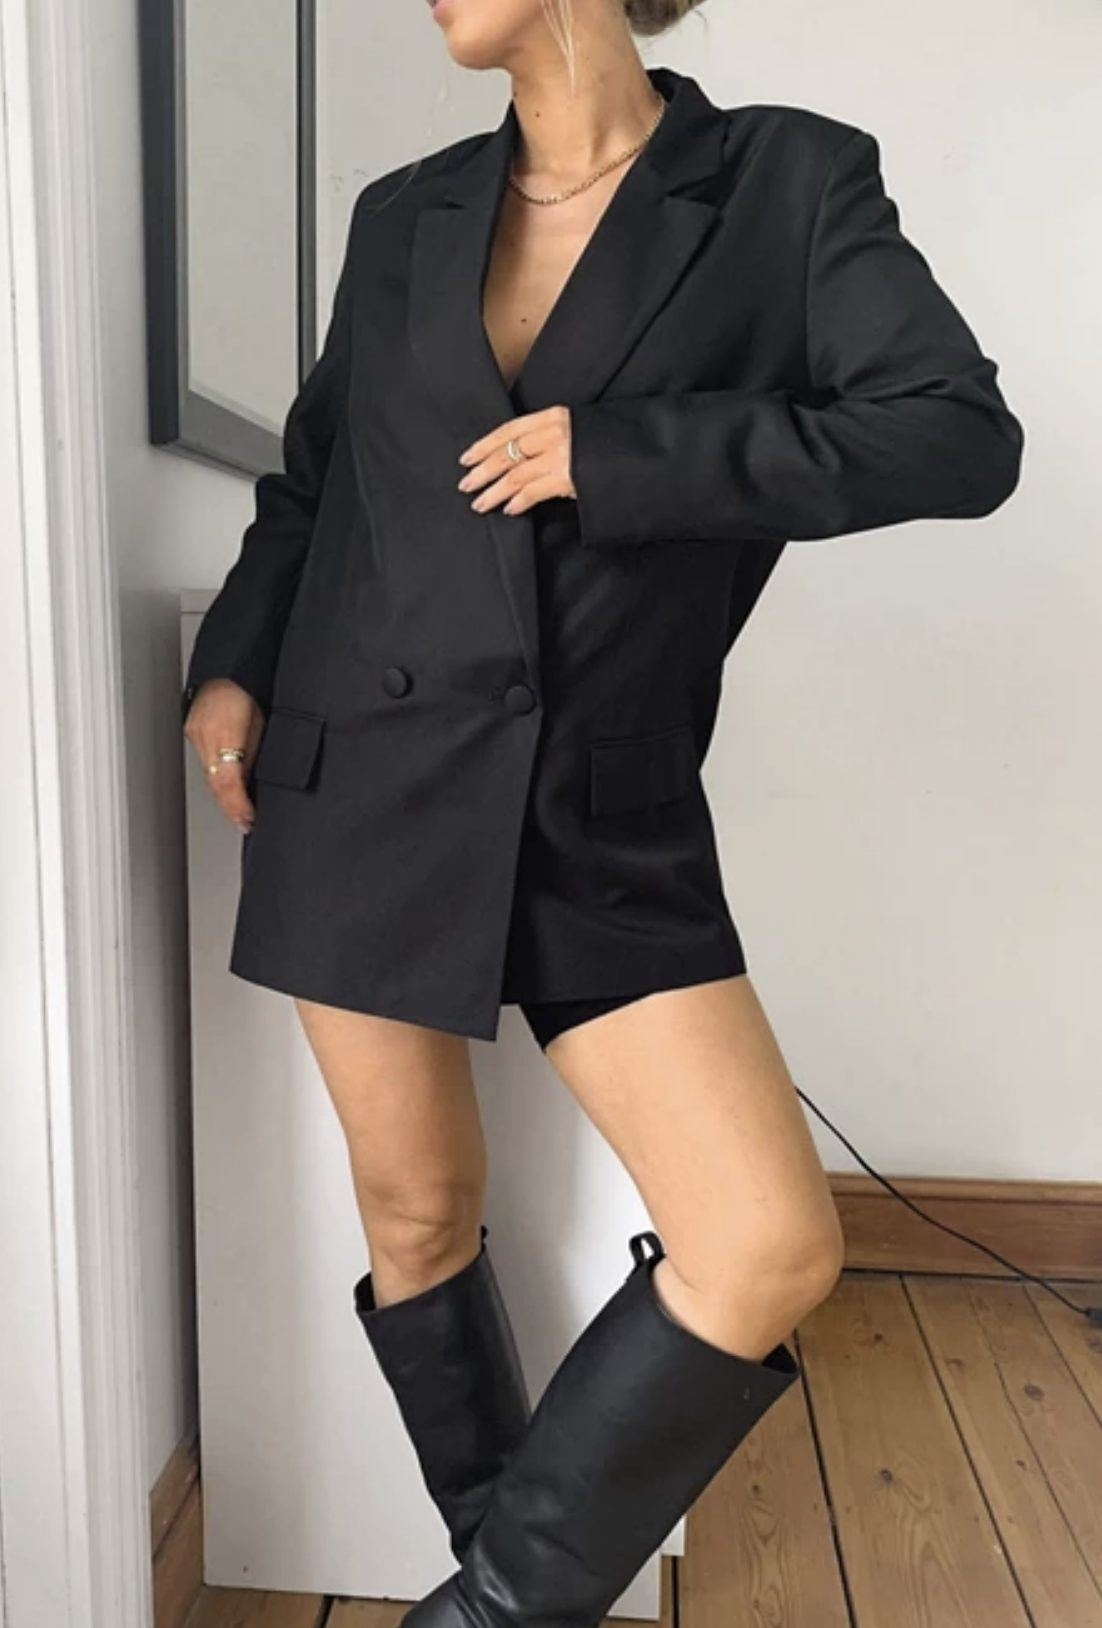 Oversized ideas in the style of a black blazer